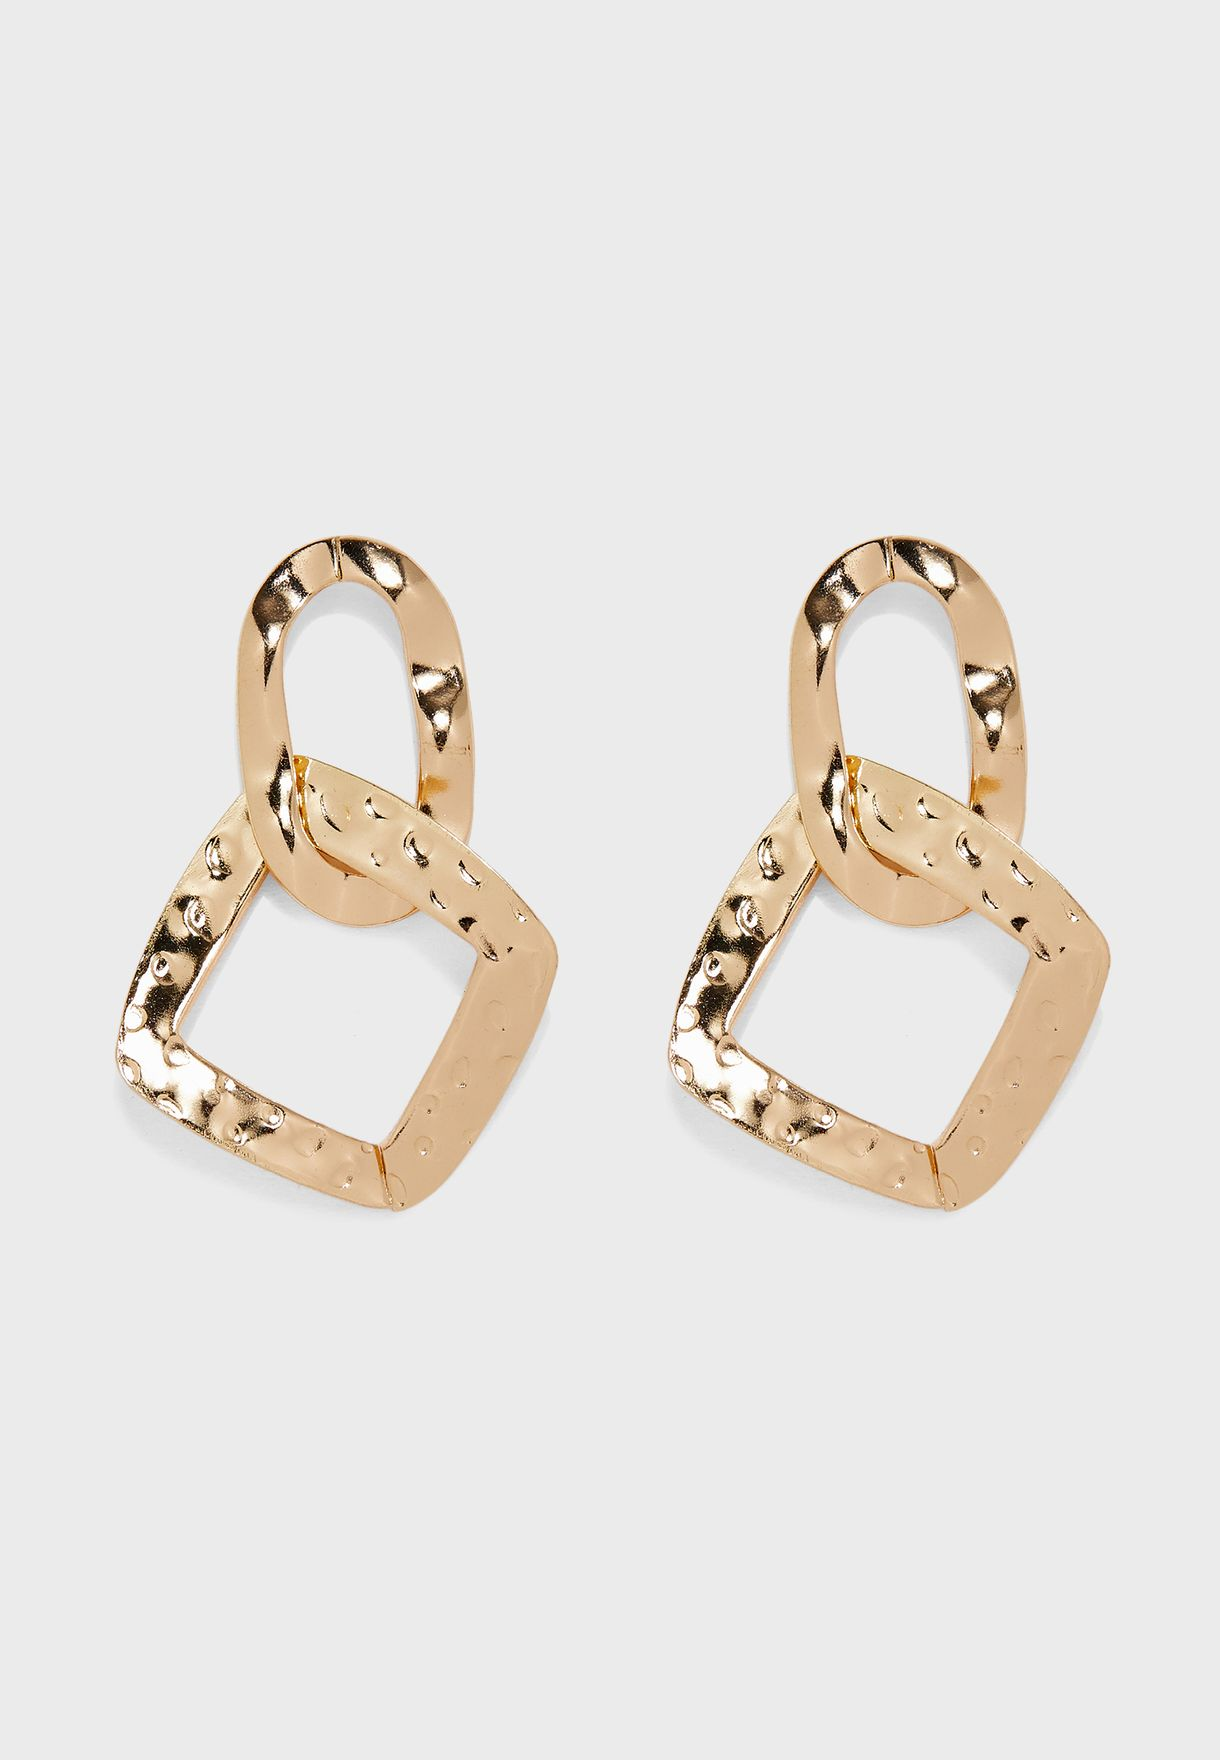 Hannered Drop Link Earrings